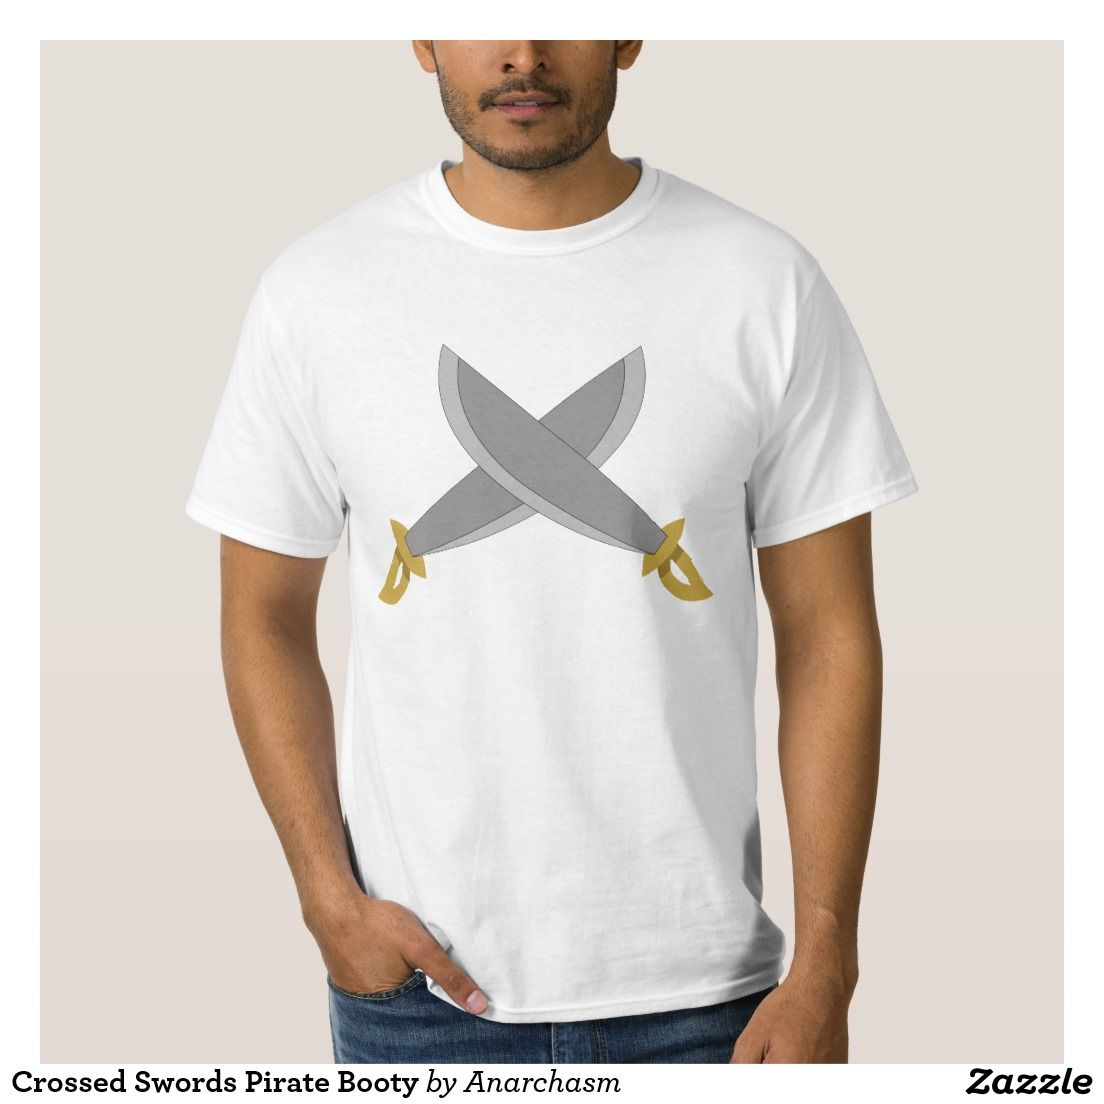 Crossed Swords Pirate Booty T-shirt